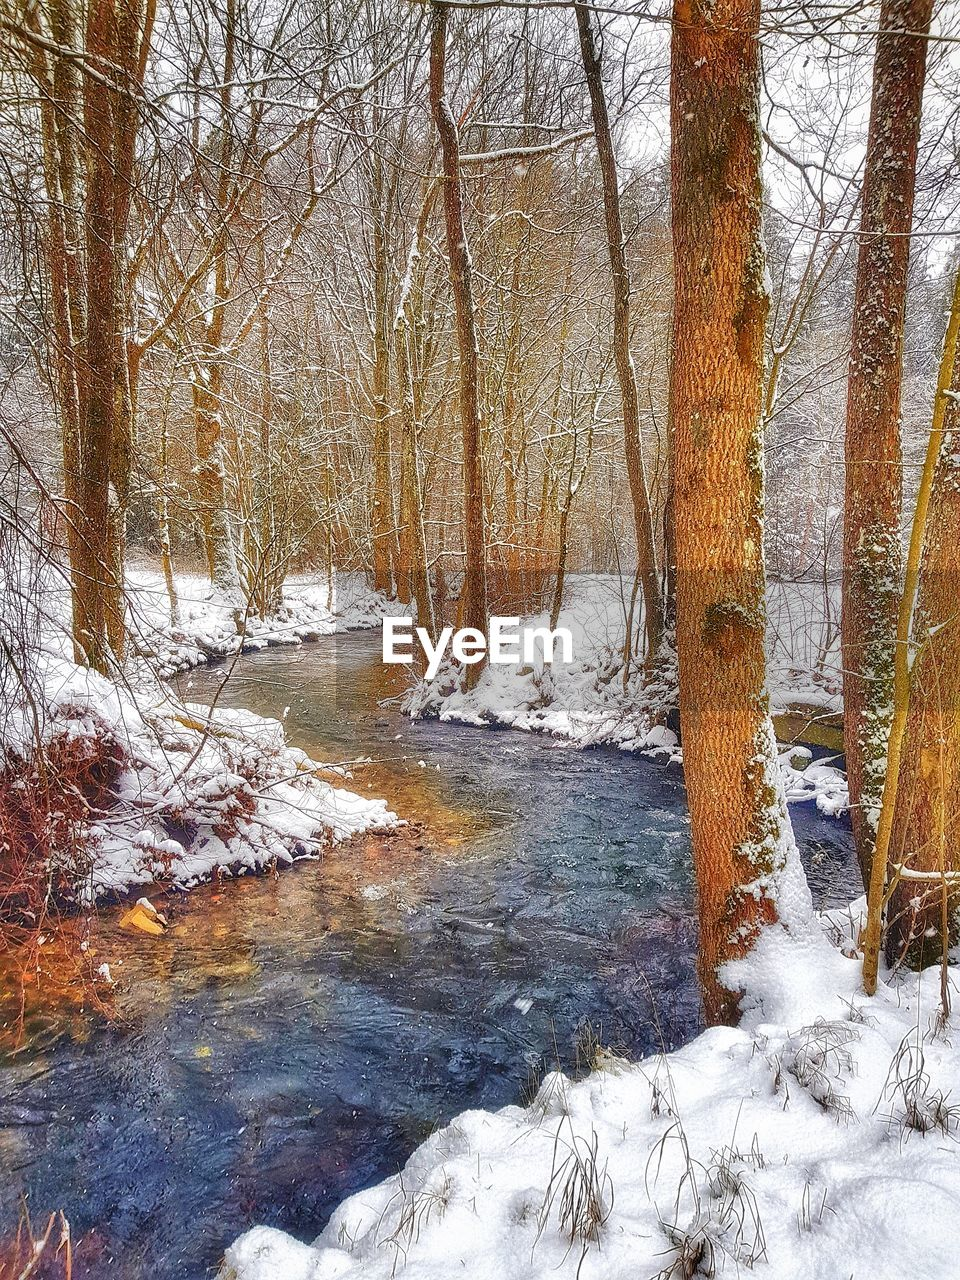 tree, winter, cold temperature, snow, plant, tranquility, land, beauty in nature, nature, no people, forest, trunk, tree trunk, day, tranquil scene, bare tree, scenics - nature, non-urban scene, outdoors, woodland, stream - flowing water, flowing water, flowing